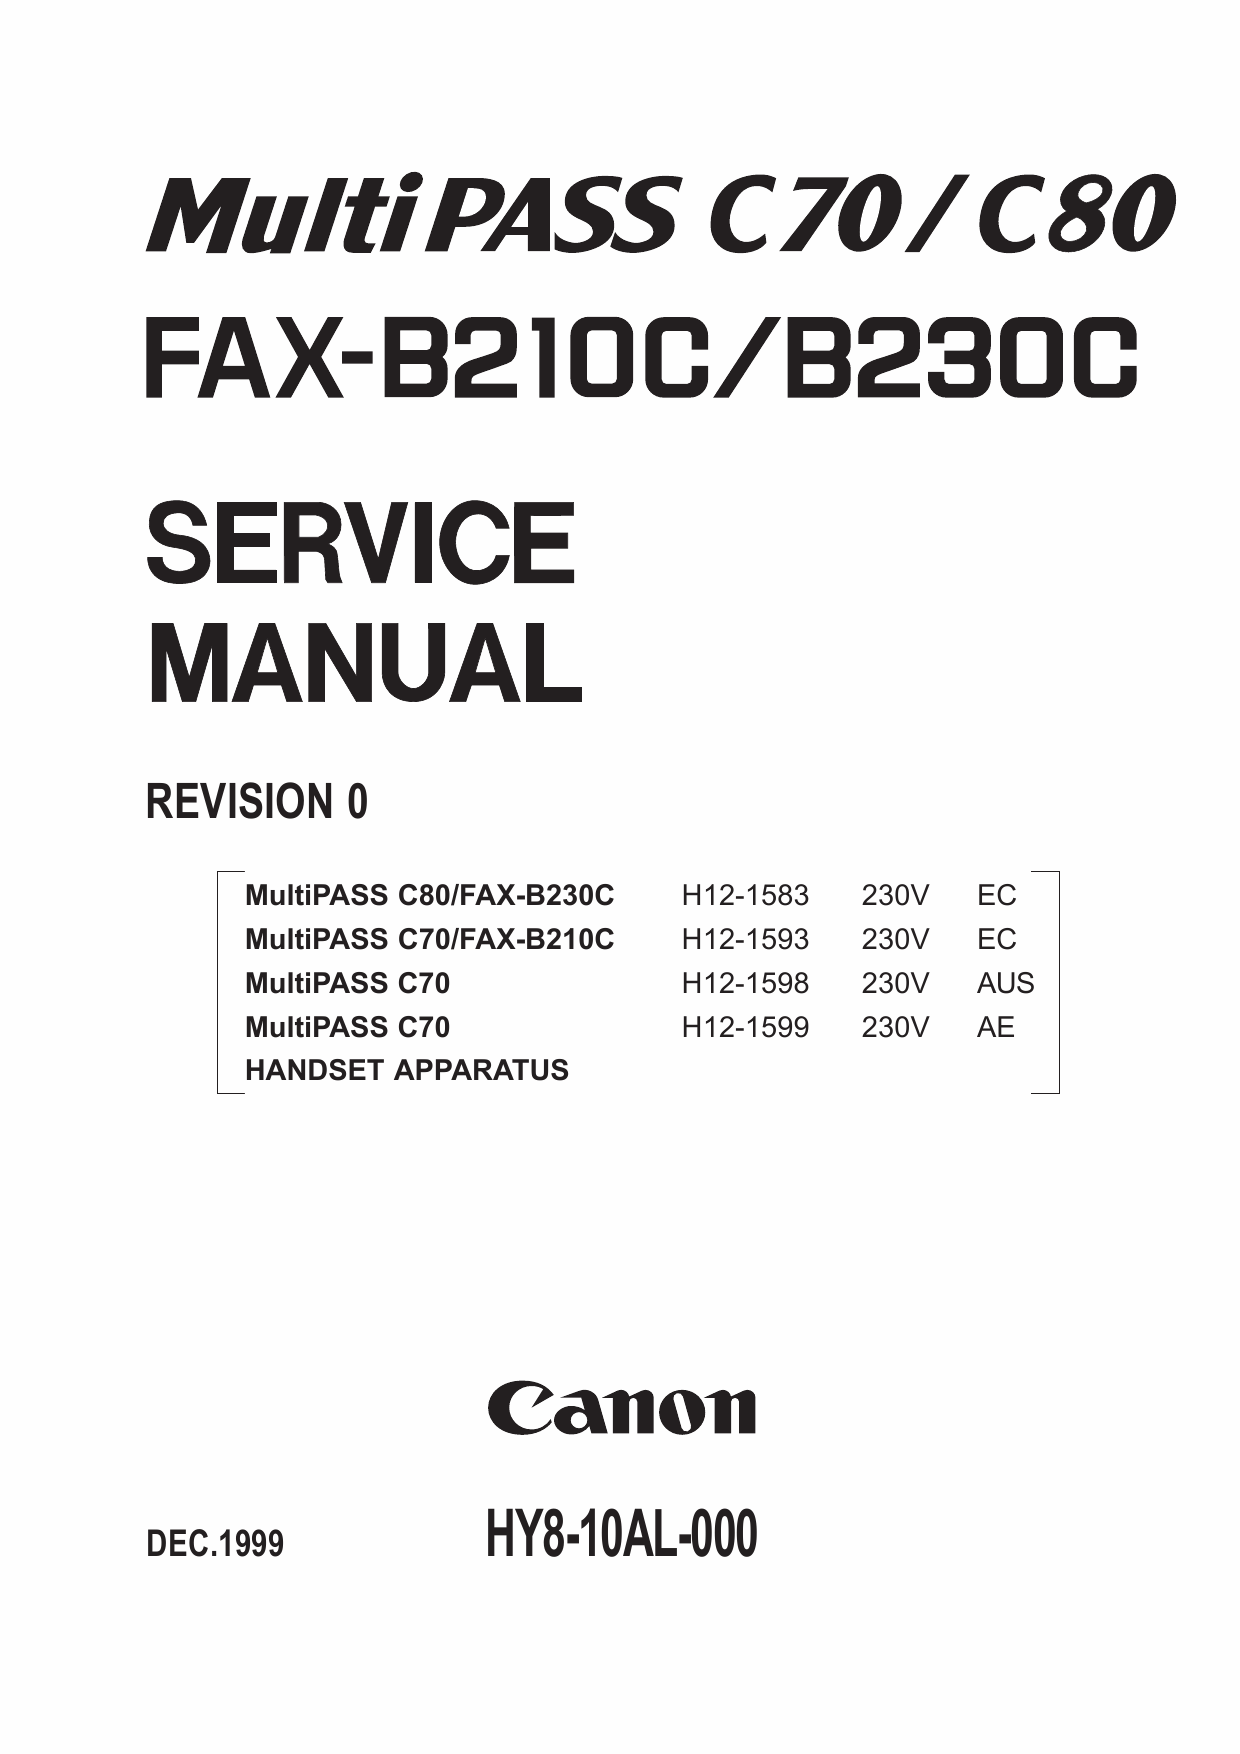 Canon FAX MultiPass-C70 C80 B210C B230C Parts and Service Manual-1